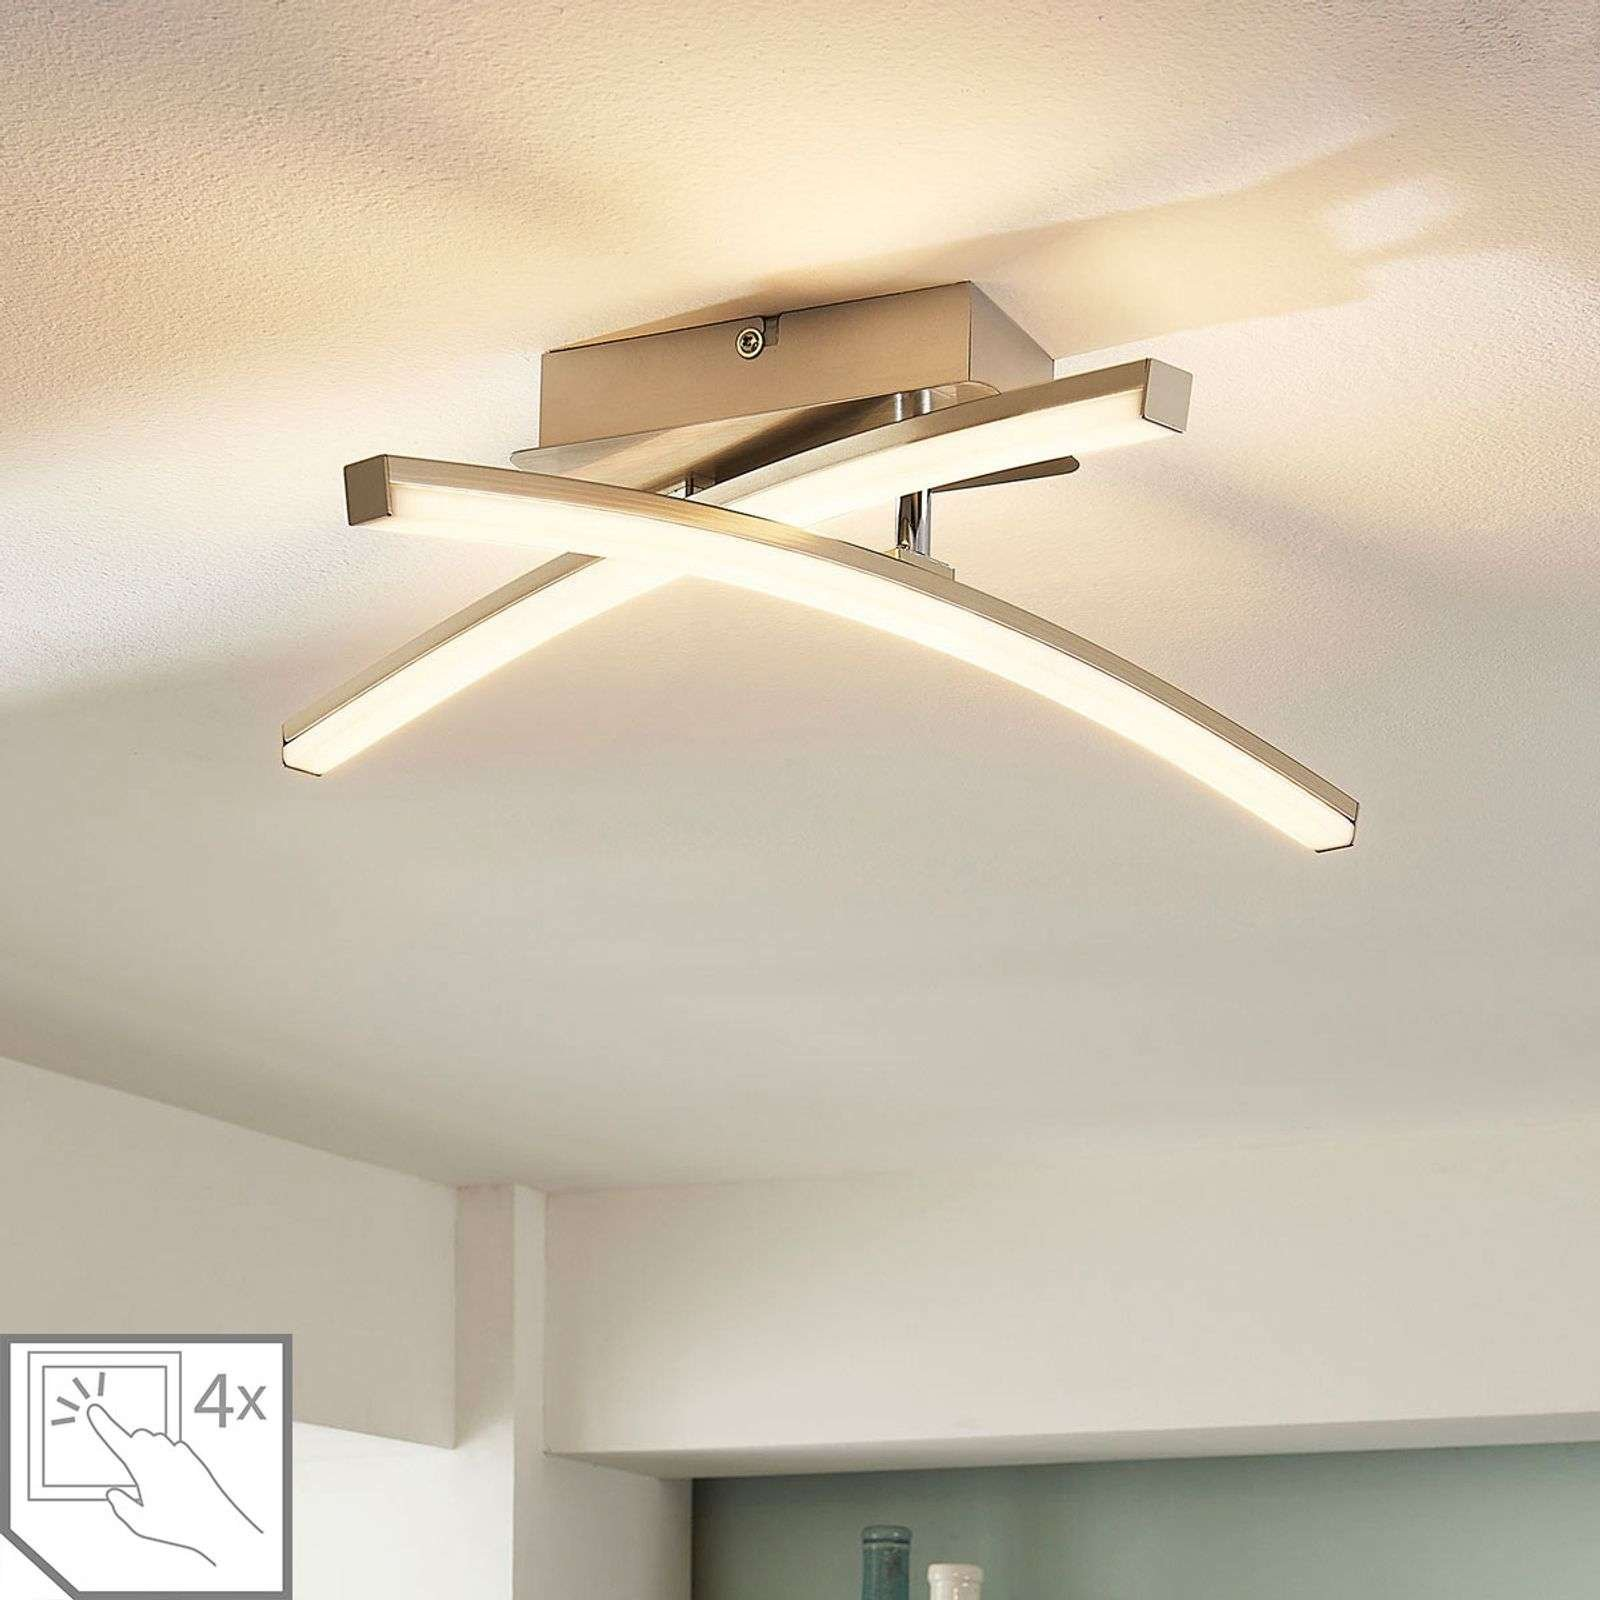 Laurenzia LED ceiling lamp  dimmable in 4 levels